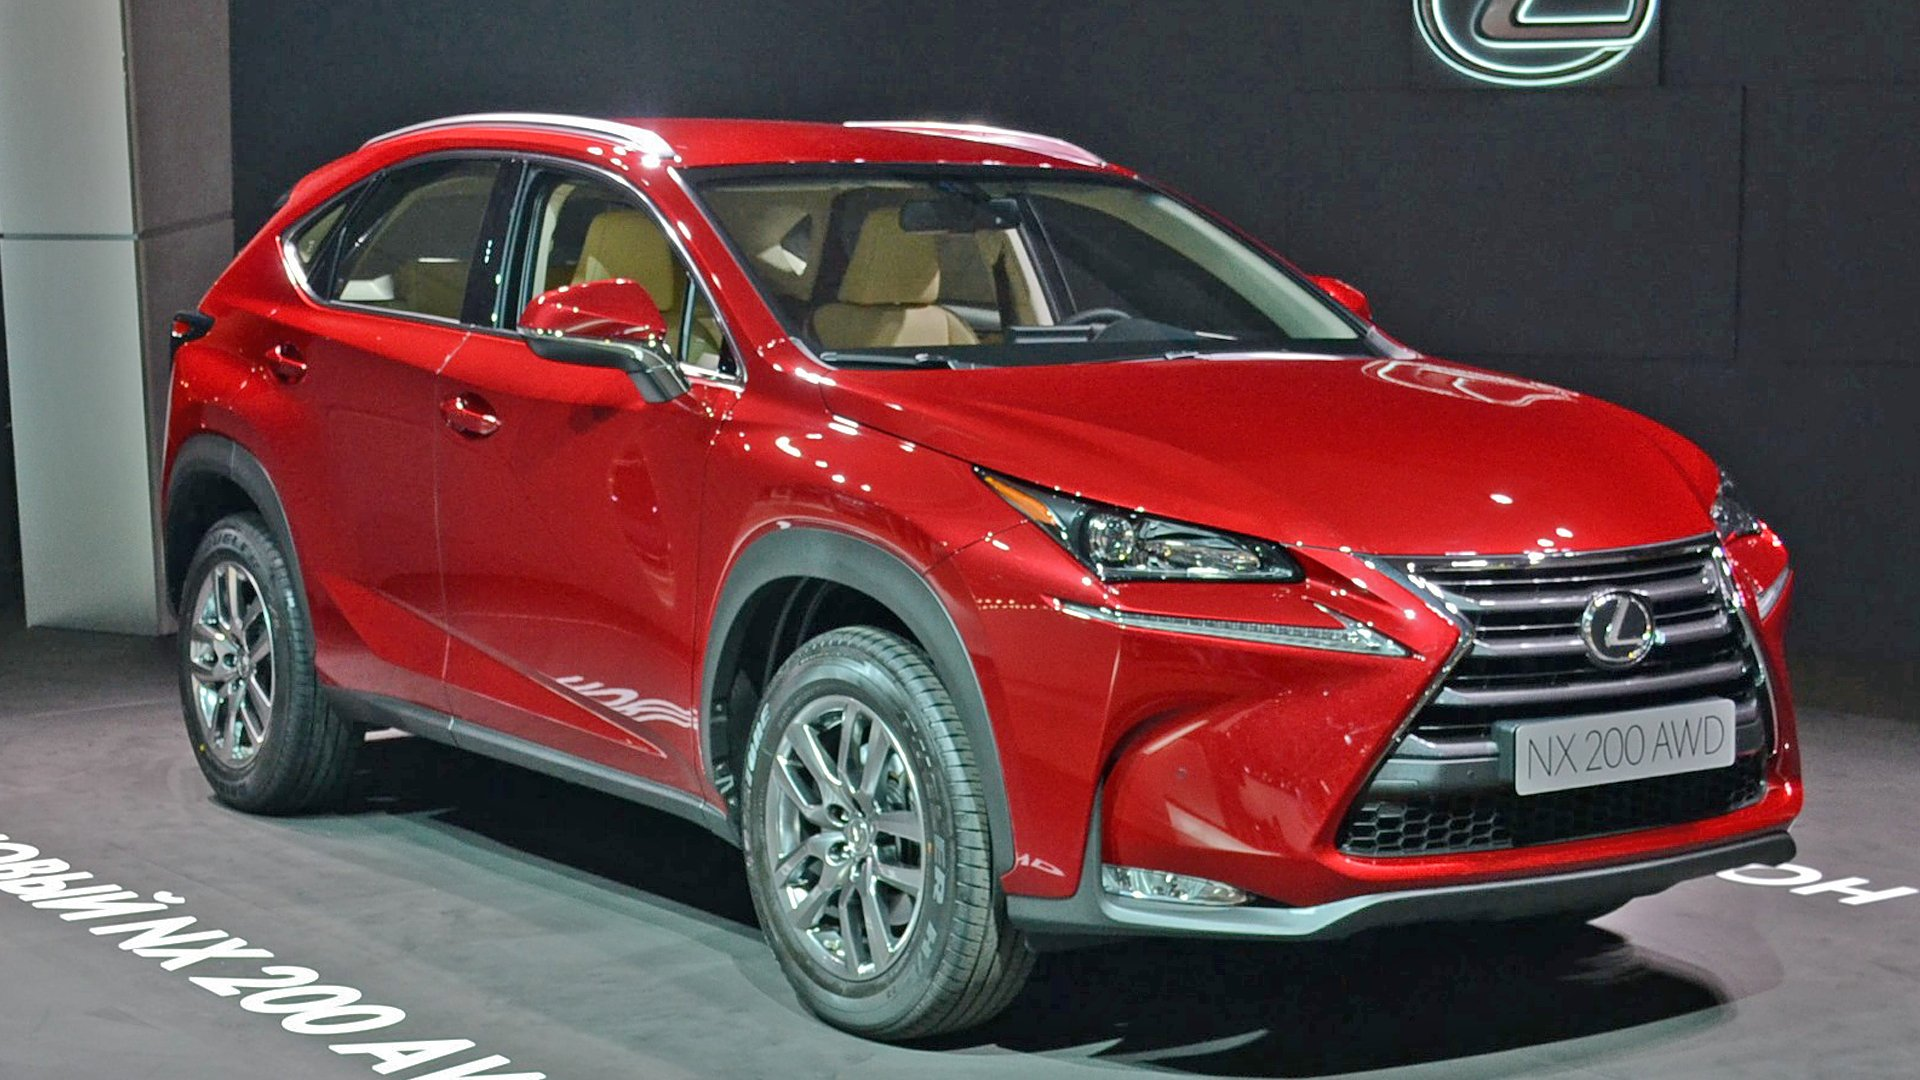 New 2019 Lexus NX 200 First Pictures